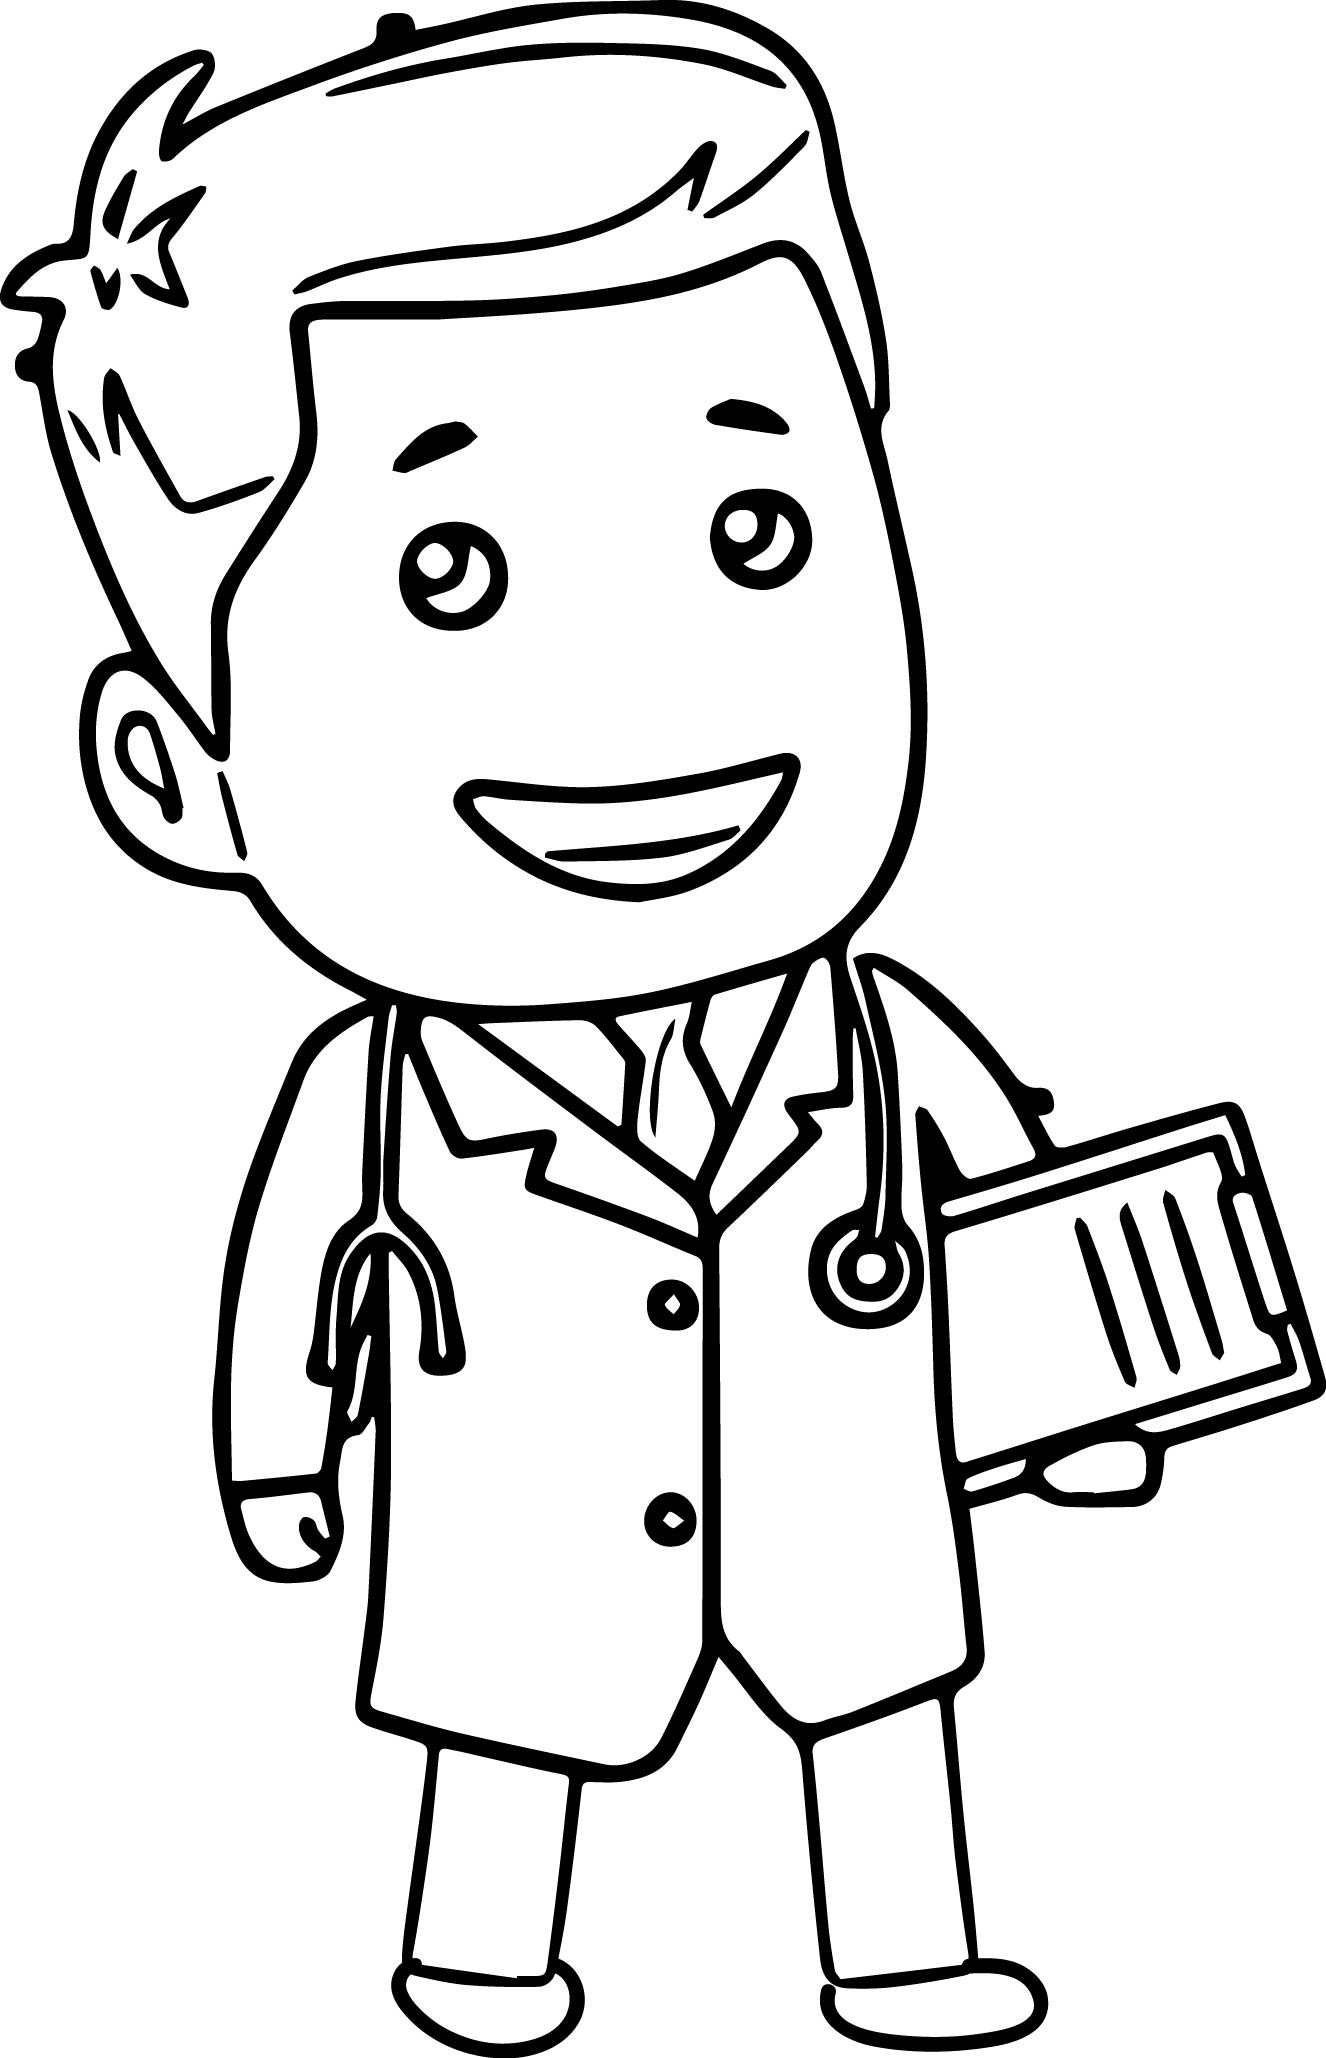 1326x2058 Doctor Tools Clipart Cartoon Coloring Page Wecoloringpage